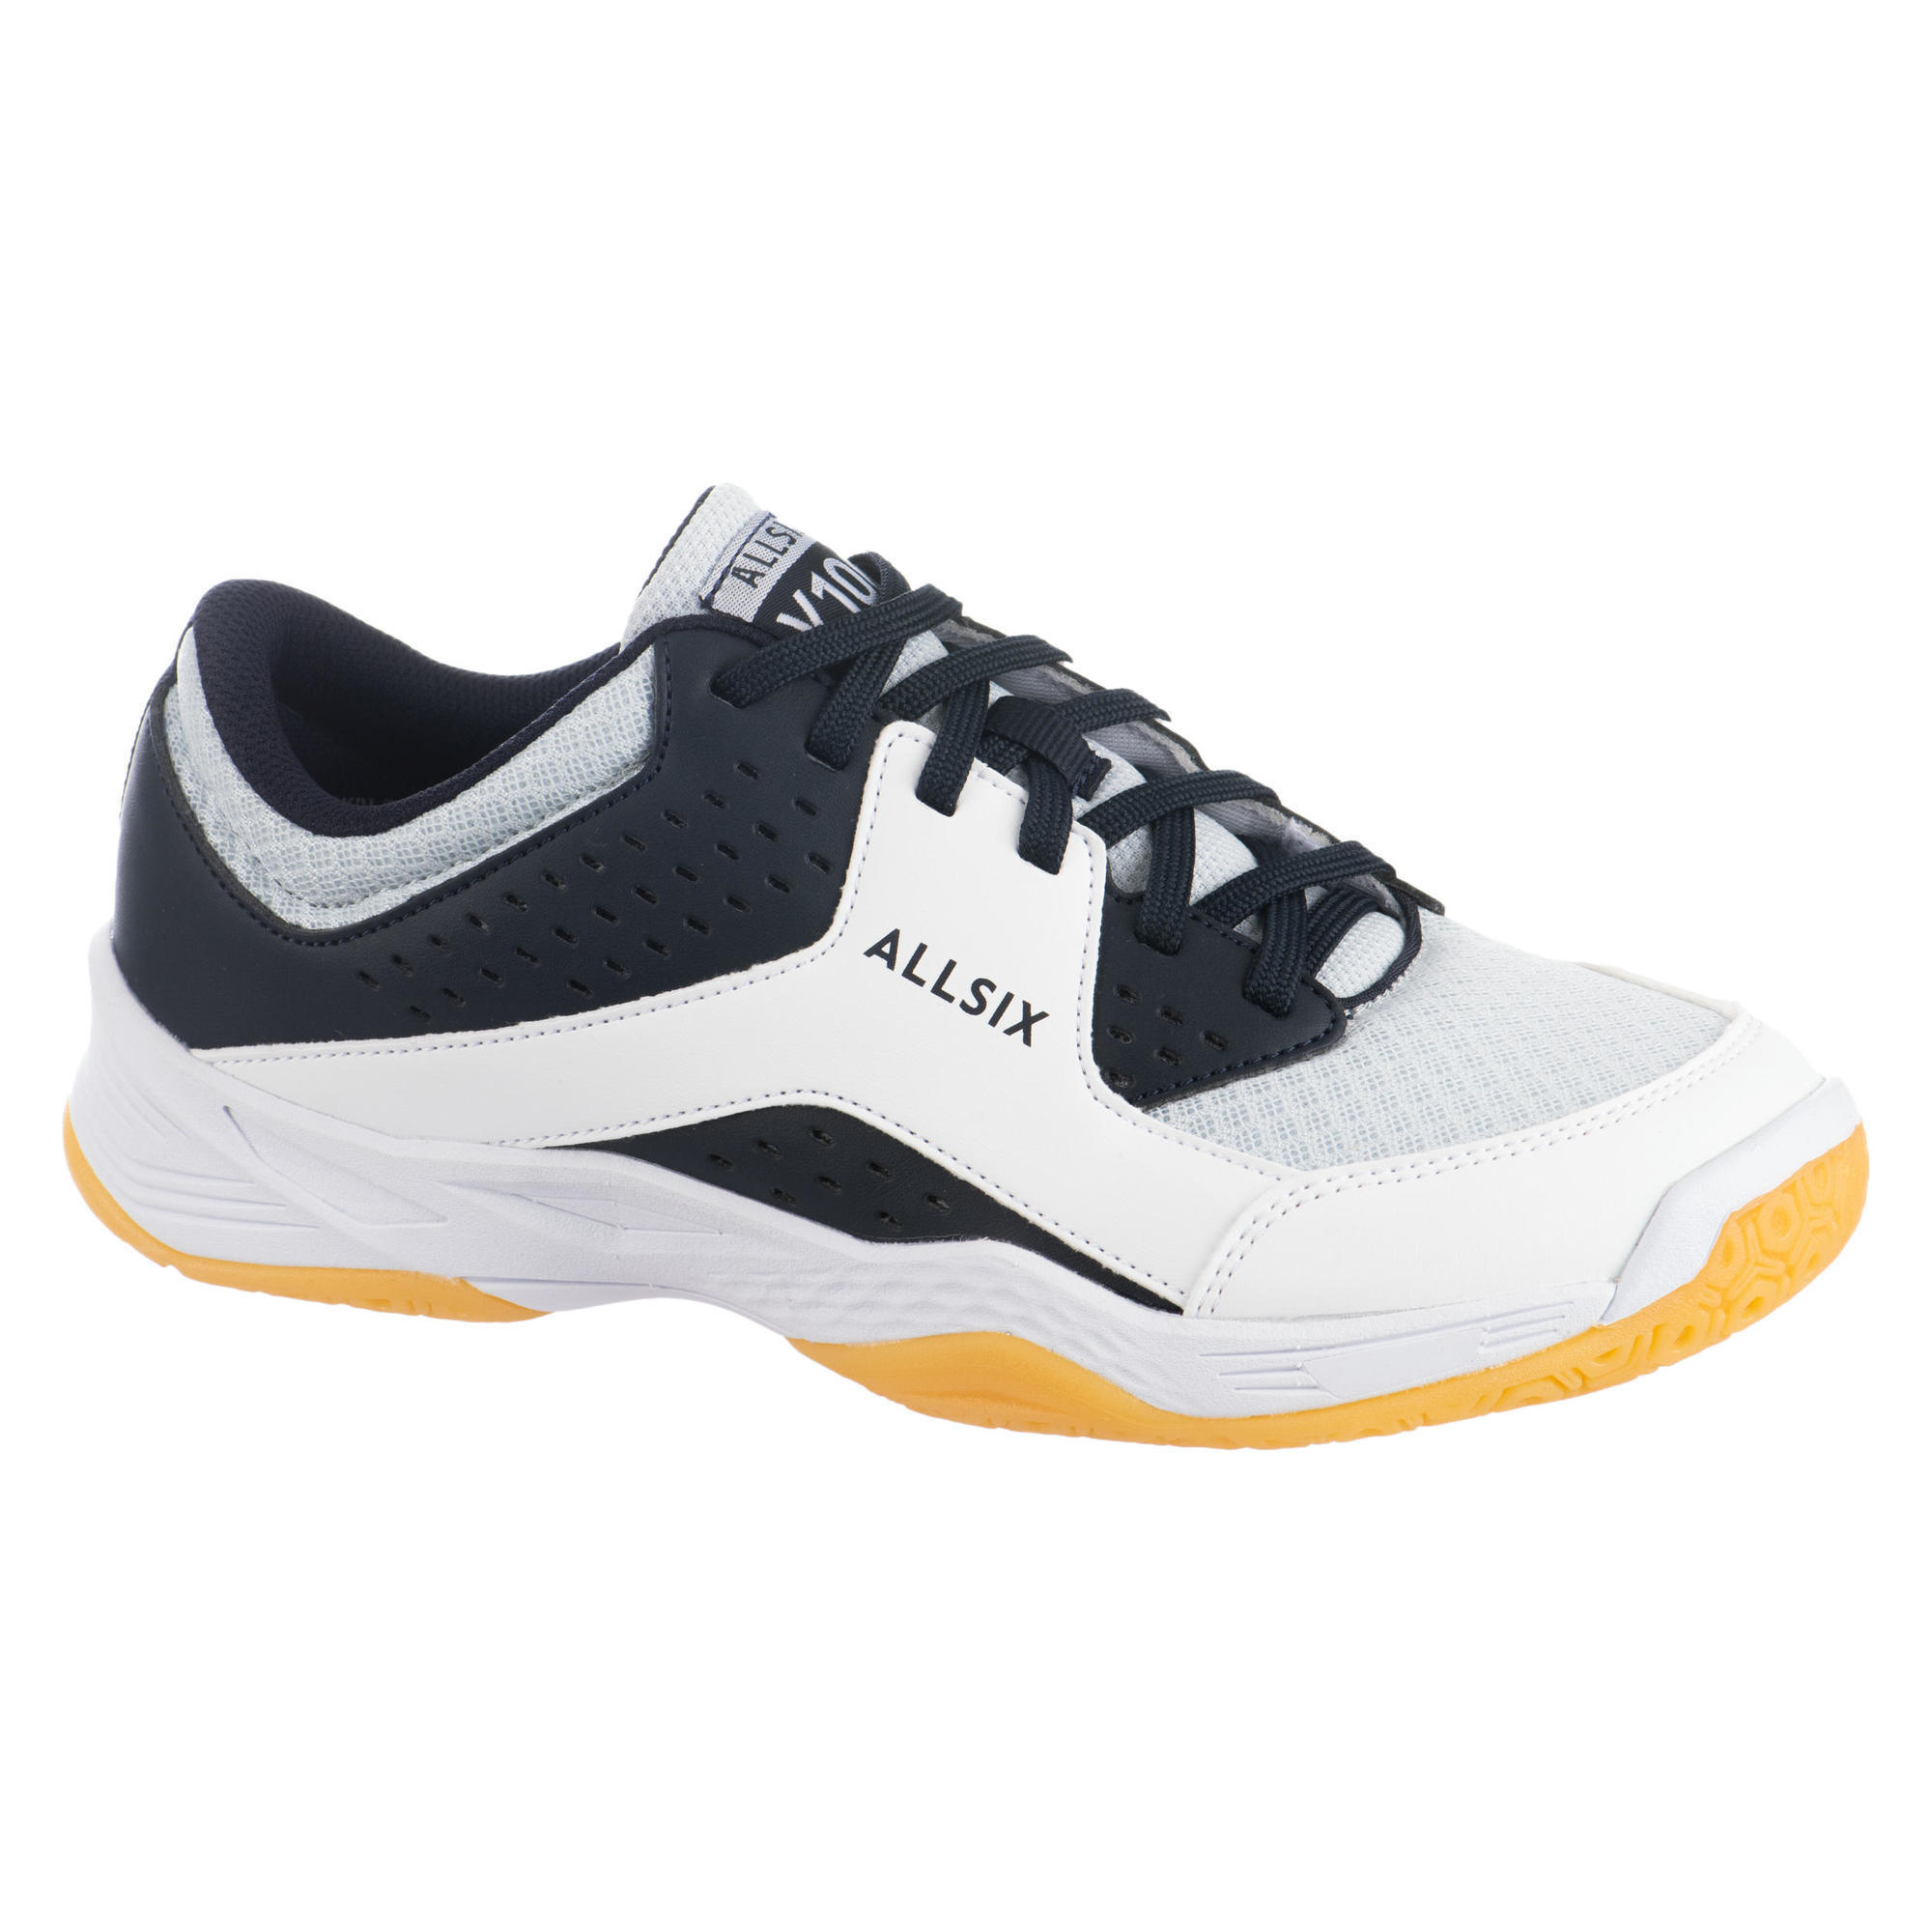 Women's Volleyball Shoes V100 - White